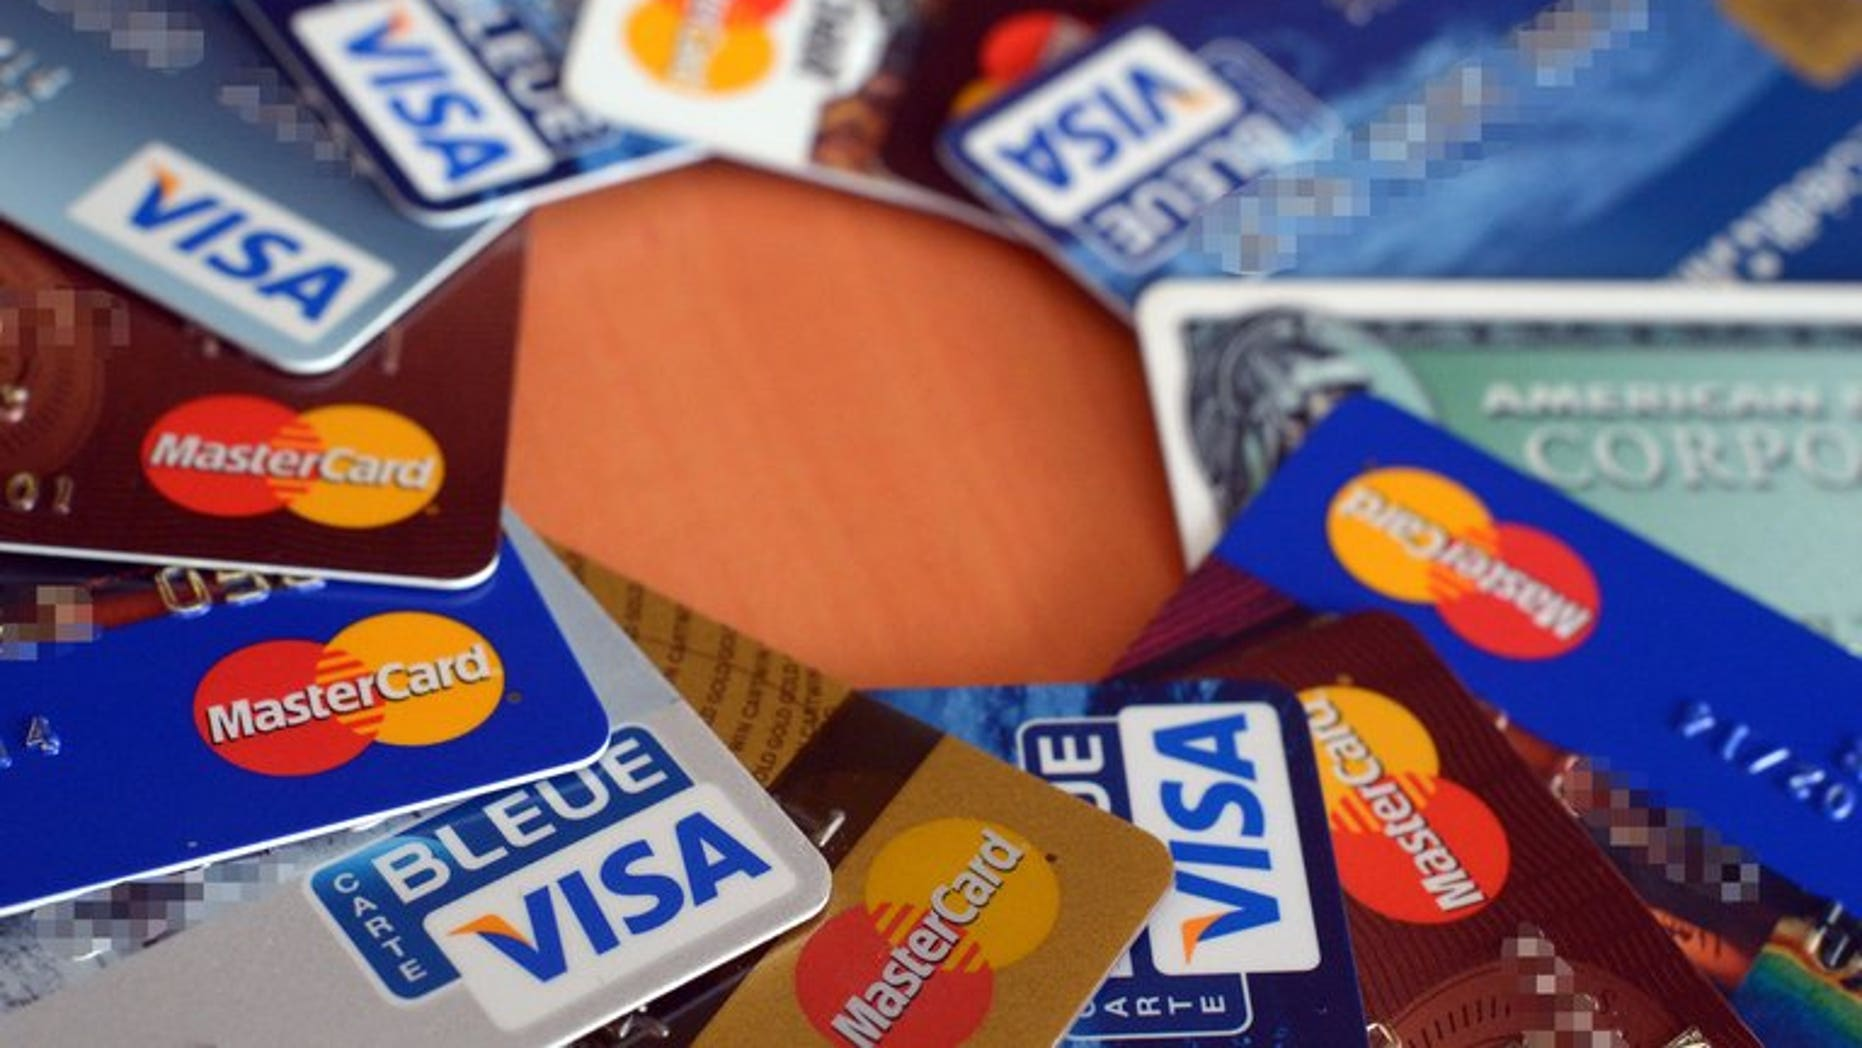 Think twice before pulling out your credit card this holiday season.